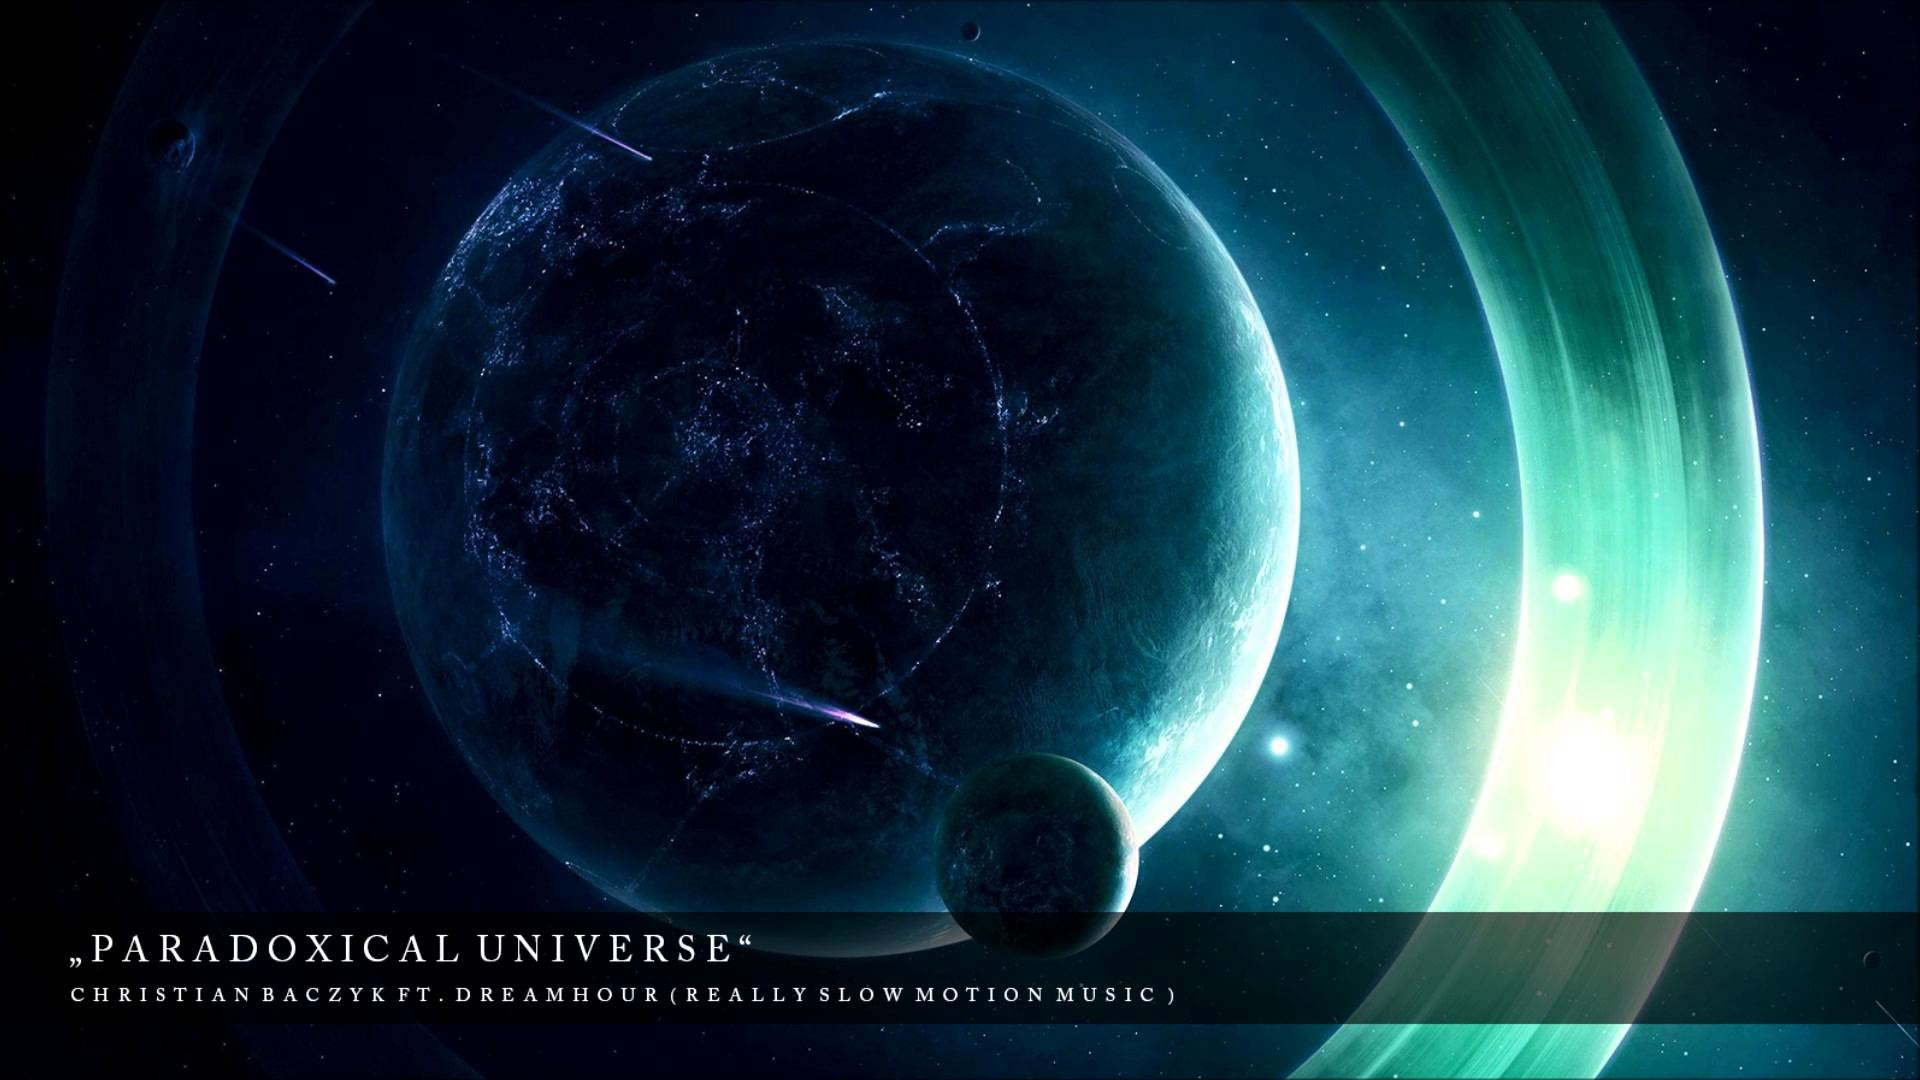 Really Slow Motion Music | Christian Baczyk (Ft. Dreamhour) – Paradoxical  Universe – YouTube